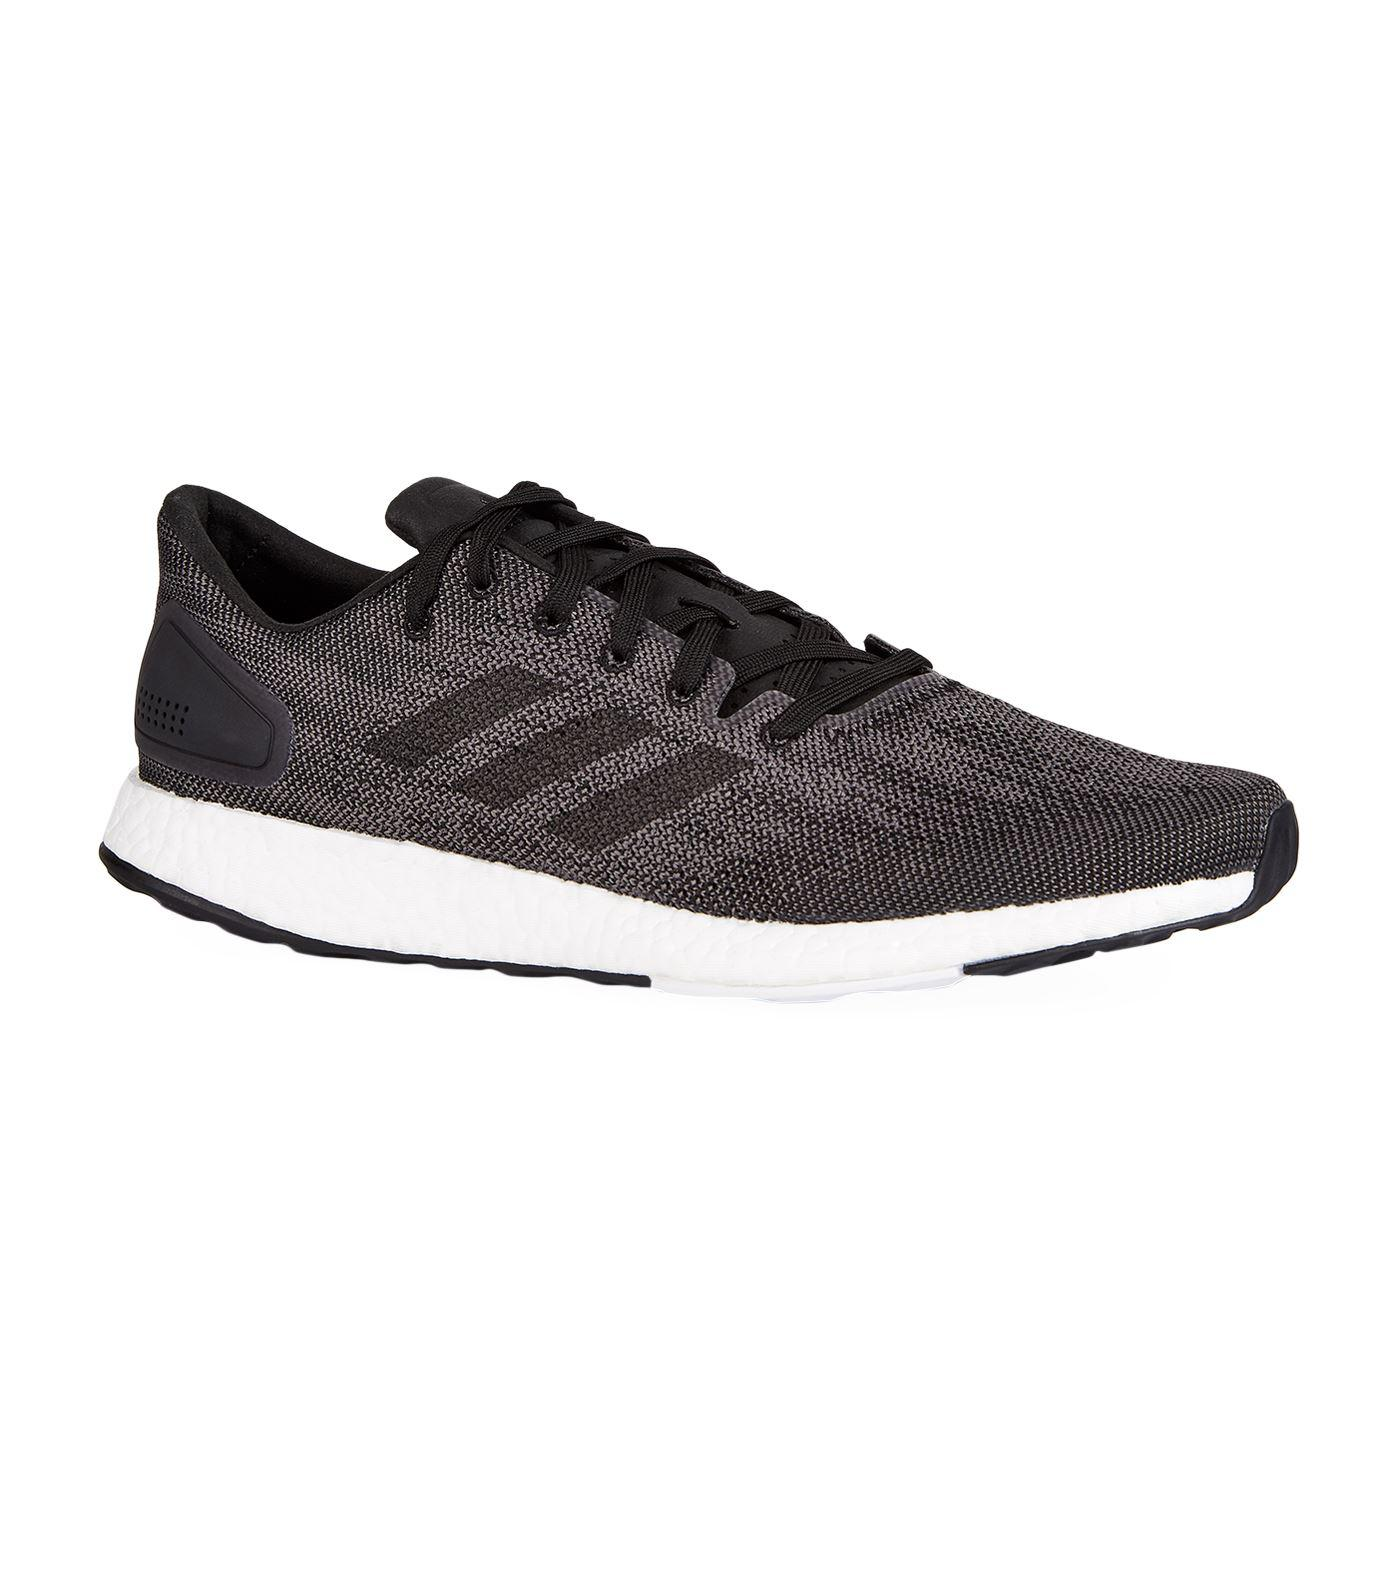 d647833d8 Adidas Pureboost Dpr Running Trainers in Gray for Men - Lyst